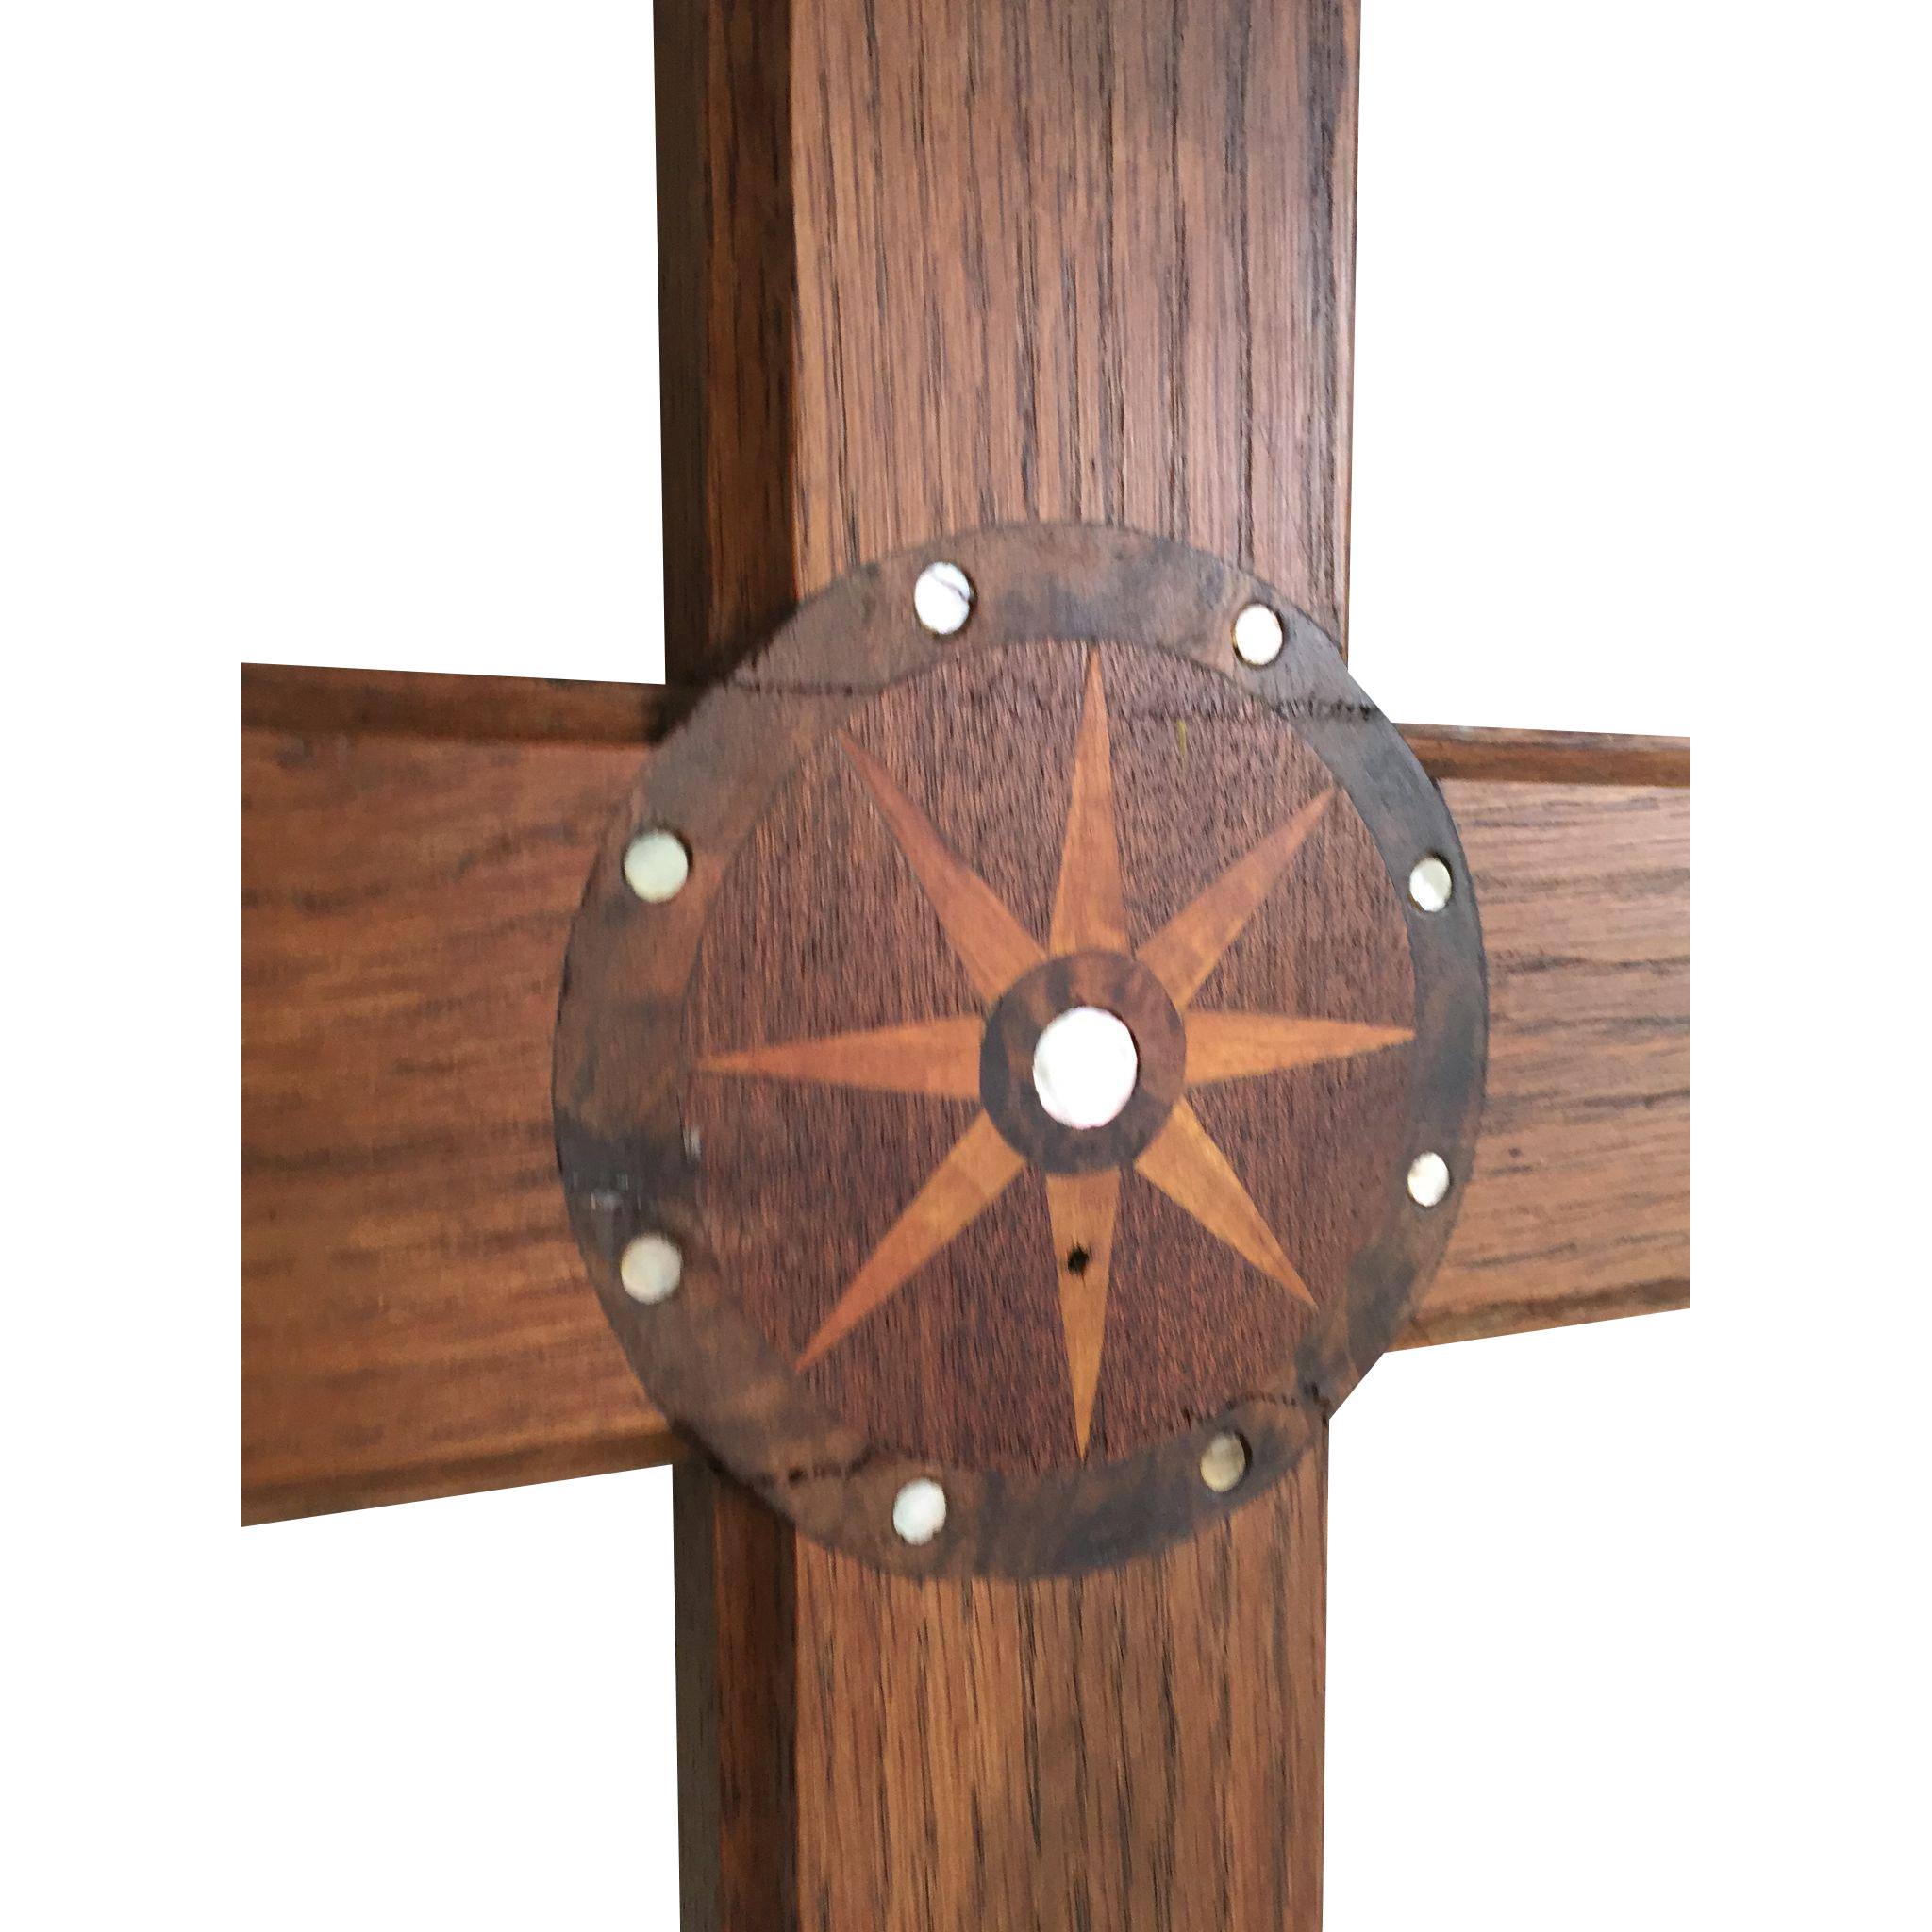 Carved Inlaid Wooden Wall Cross Wooden, Inlaid Mother of Pearl